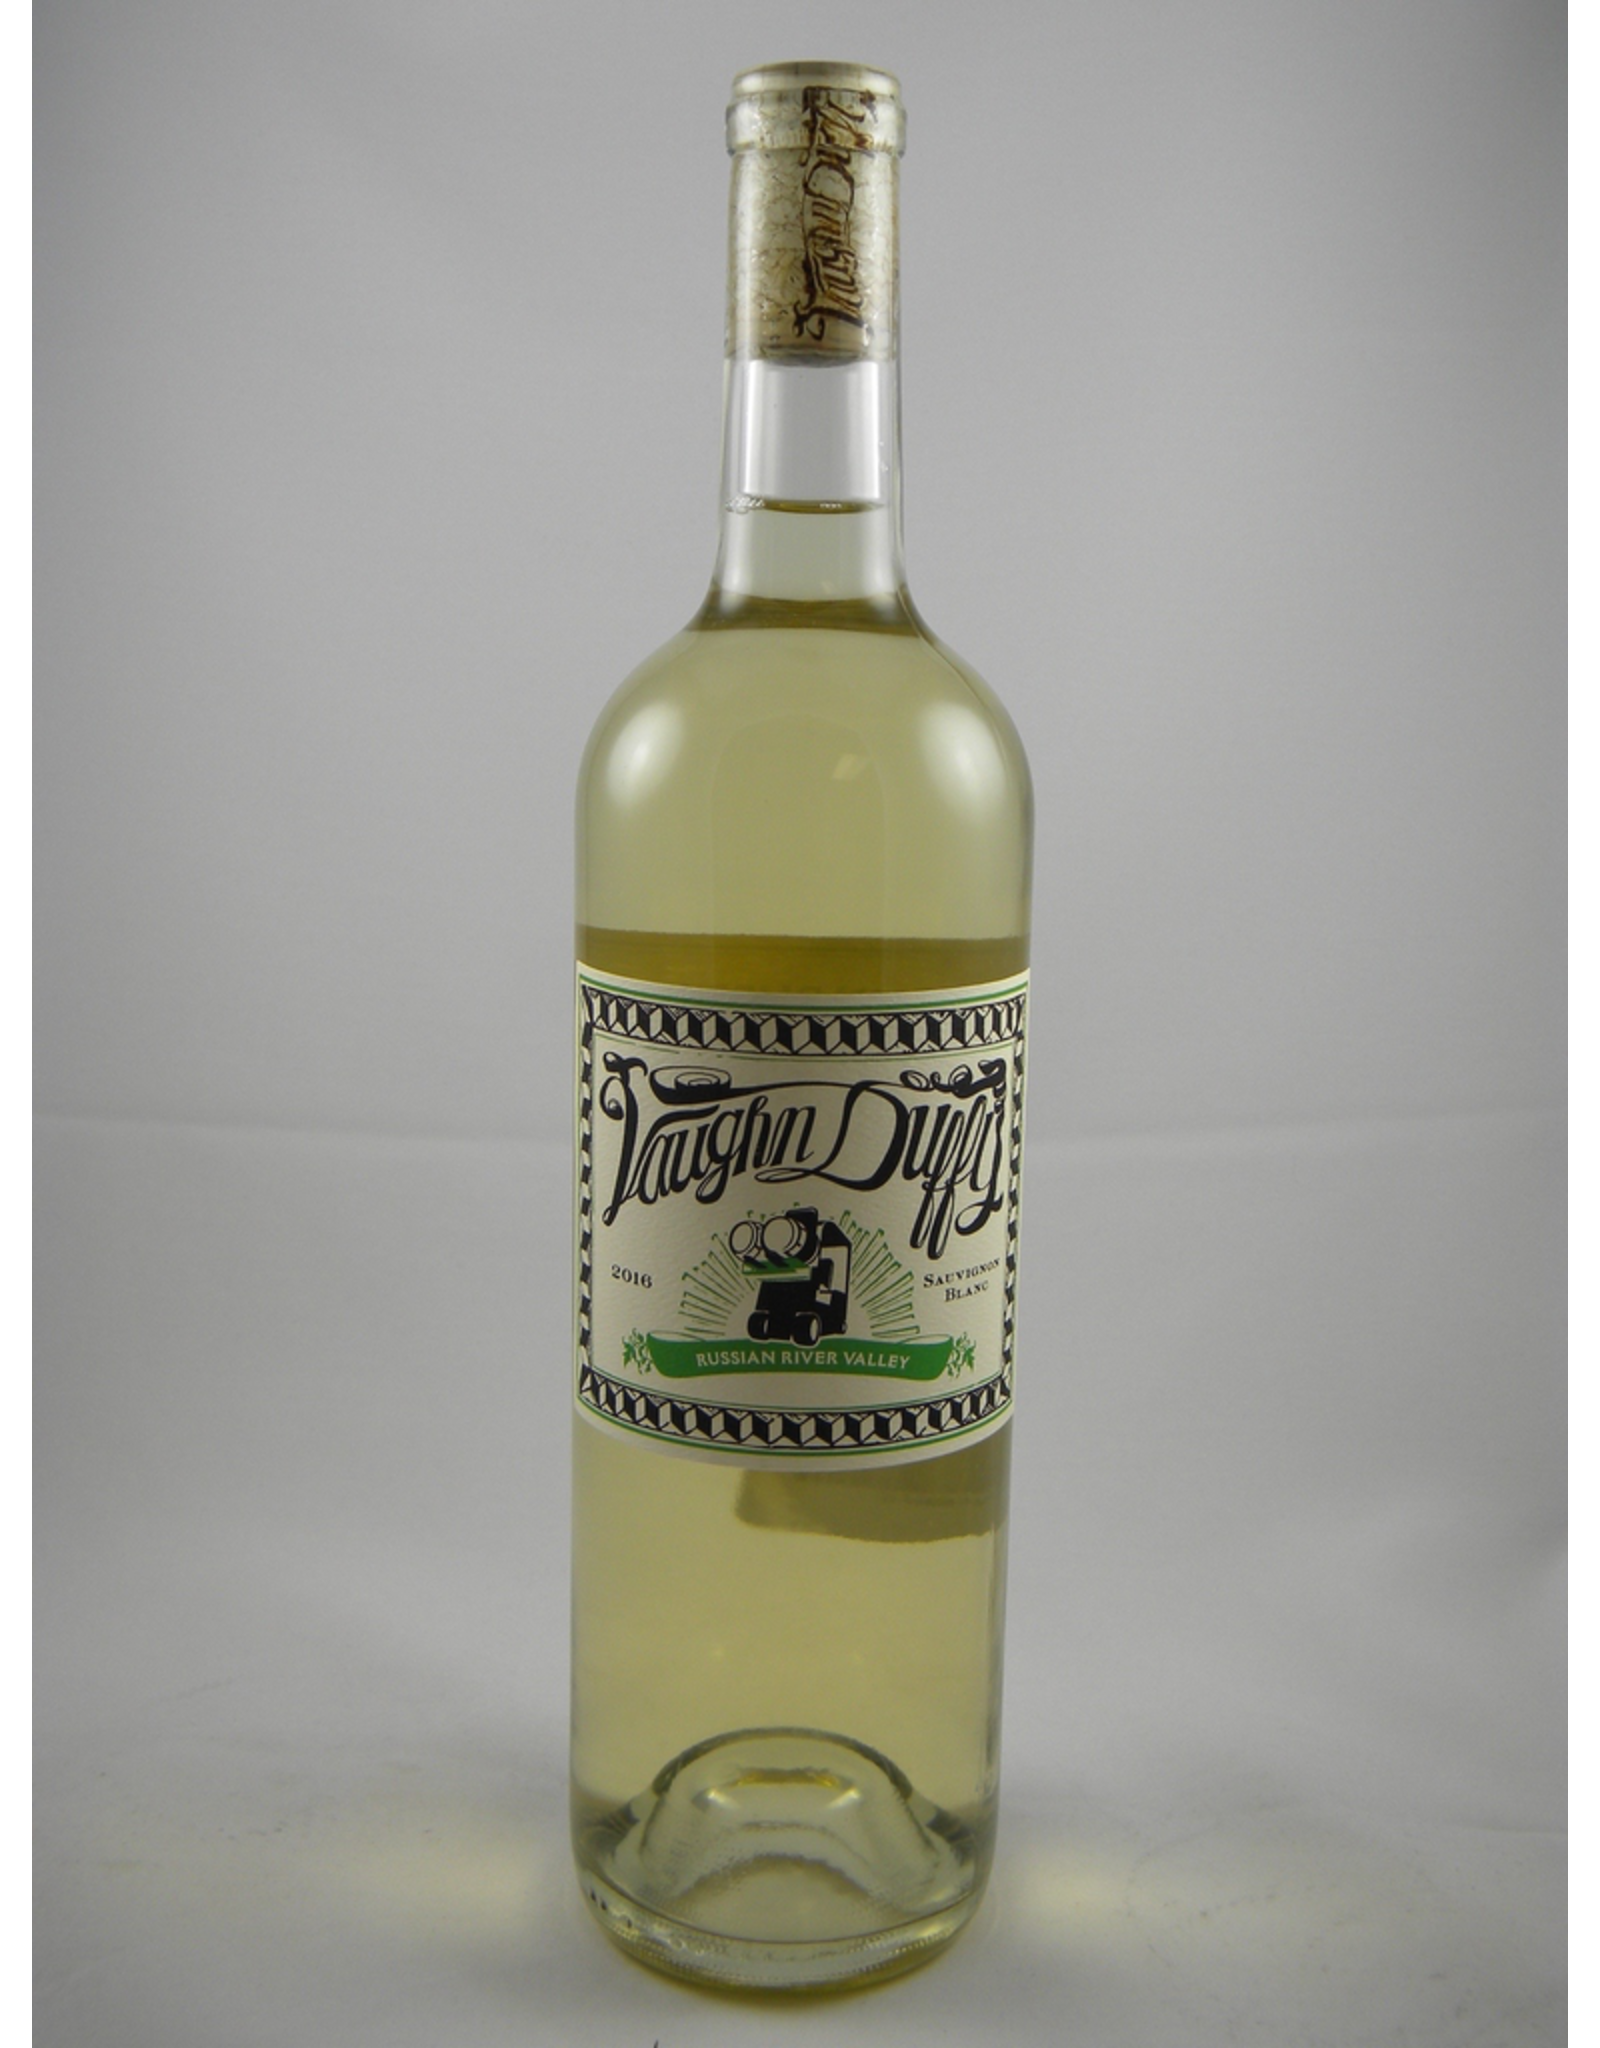 Vaughn Duffy Sauvignon Blanc Russian River Valley Hopkins Ranch 2018